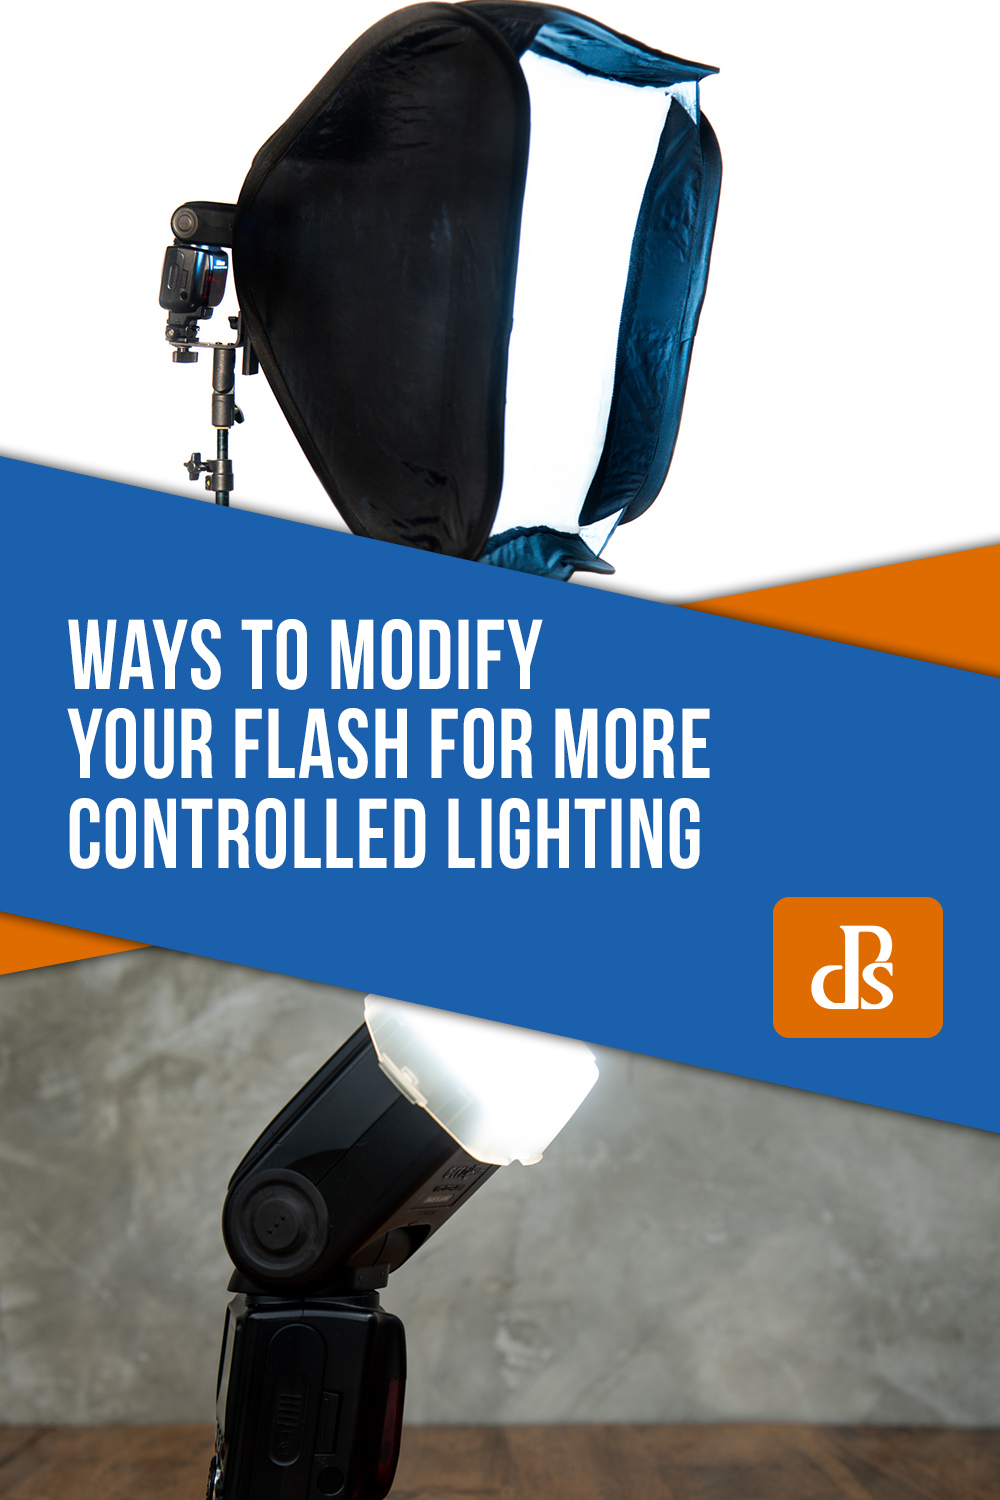 ways-to-modify-your-flash-for-more-controlled-lighting